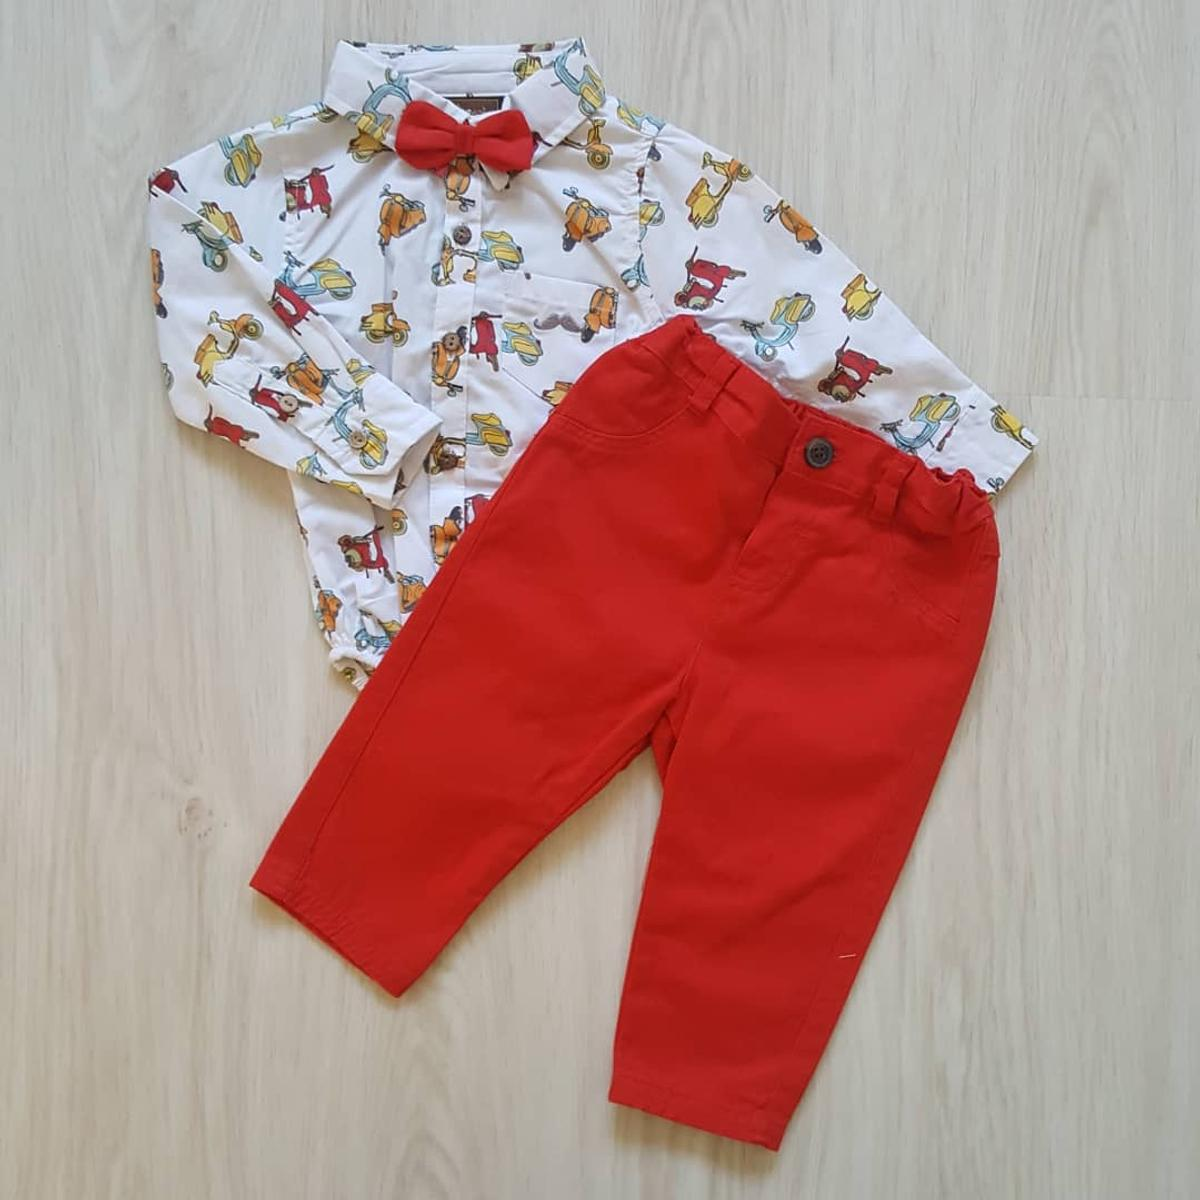 Brand new and tagged Size 6-12 months